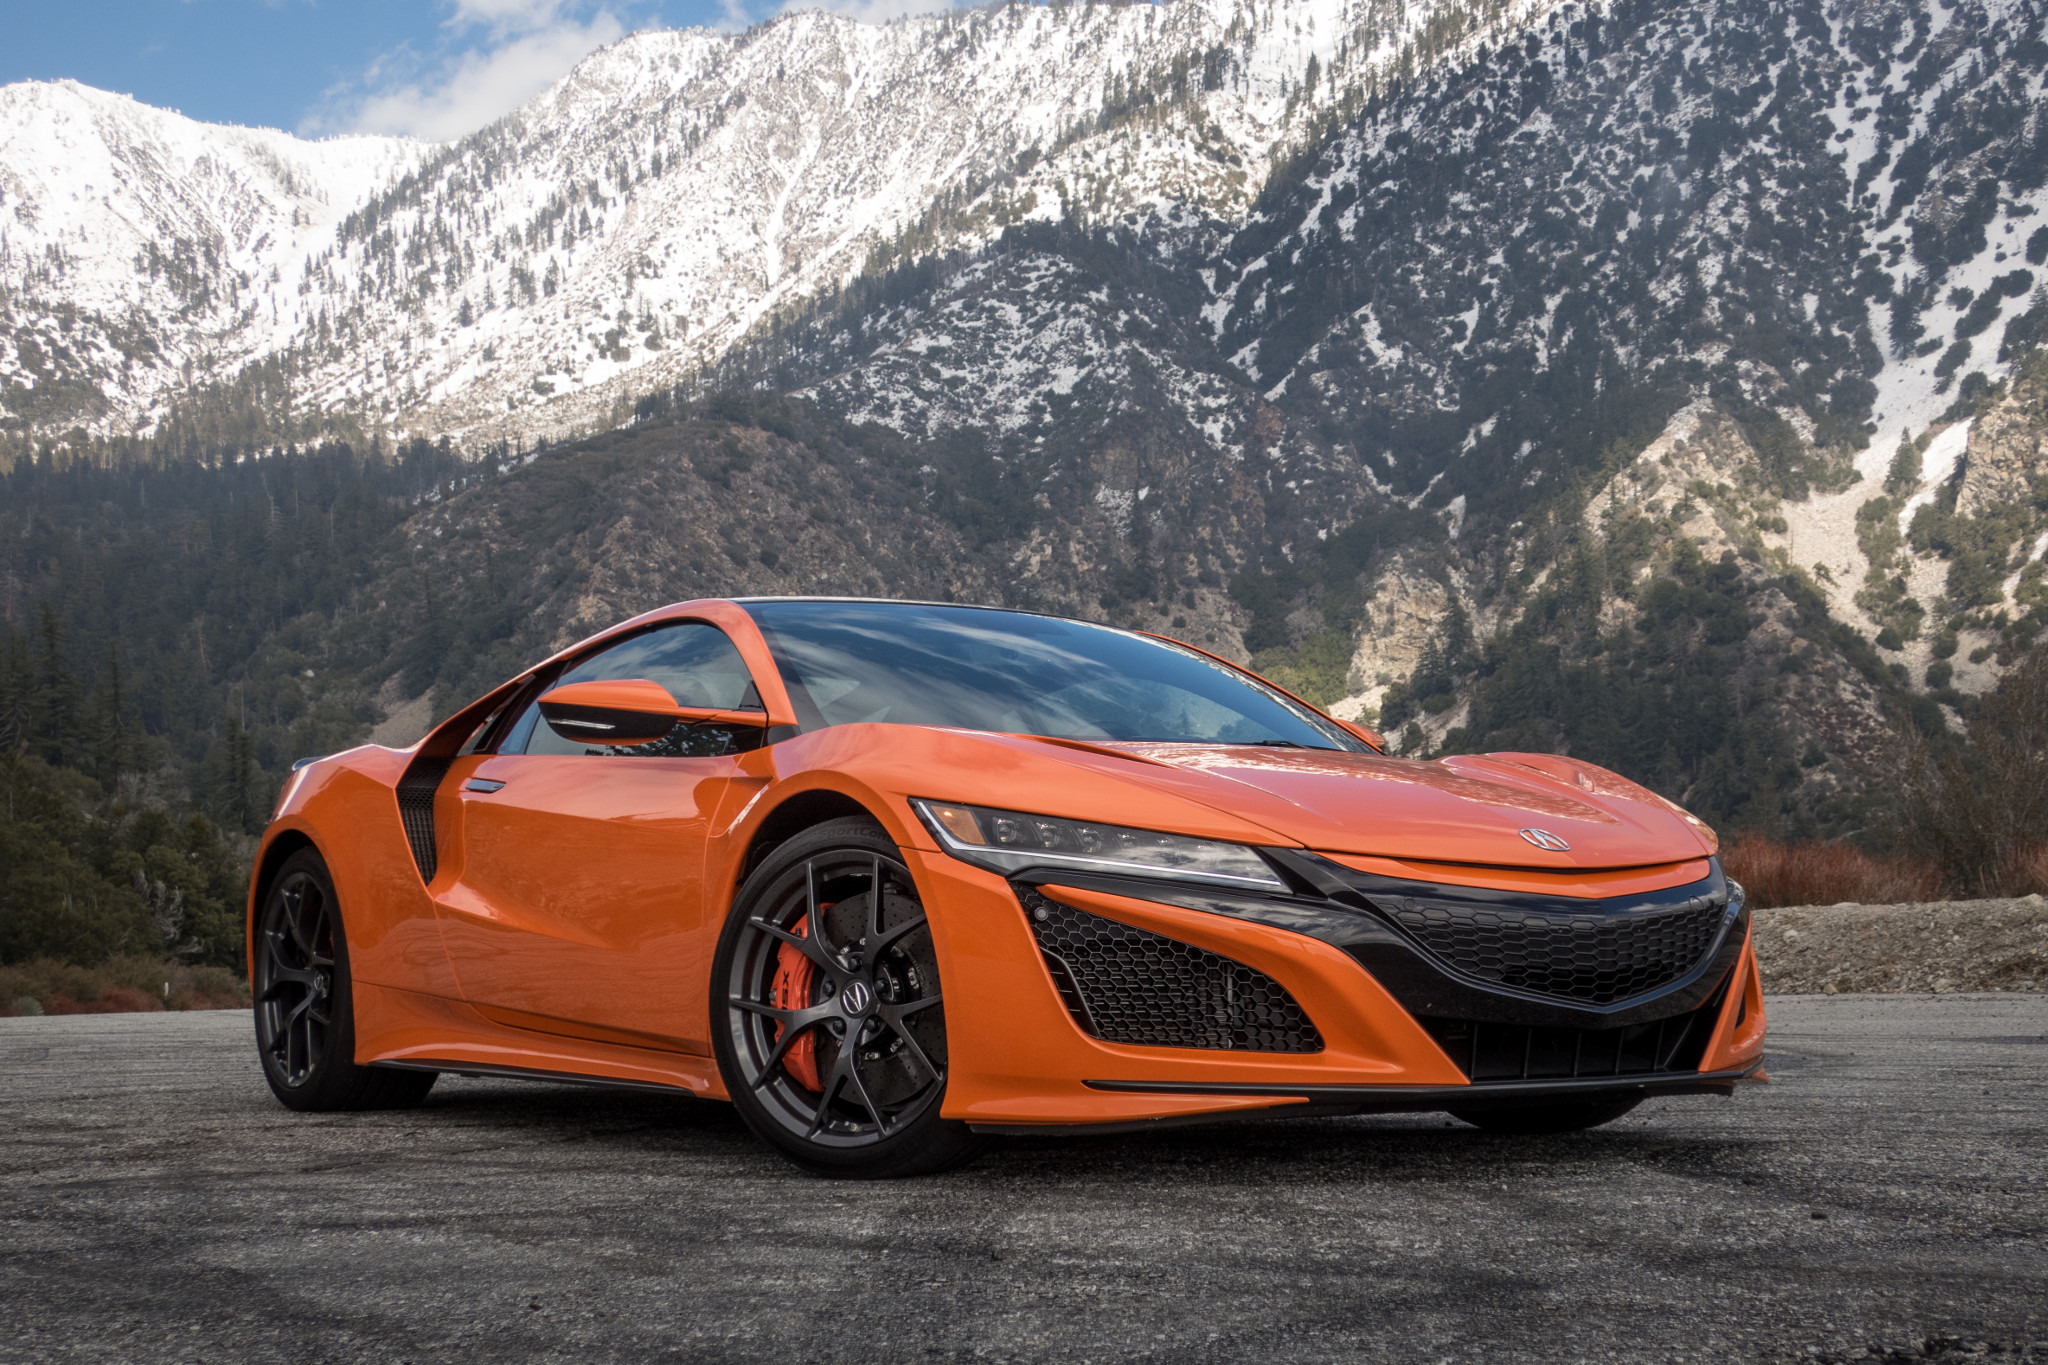 2019 Acura NSX: How Hybrid Helps This Super Car Be a ...